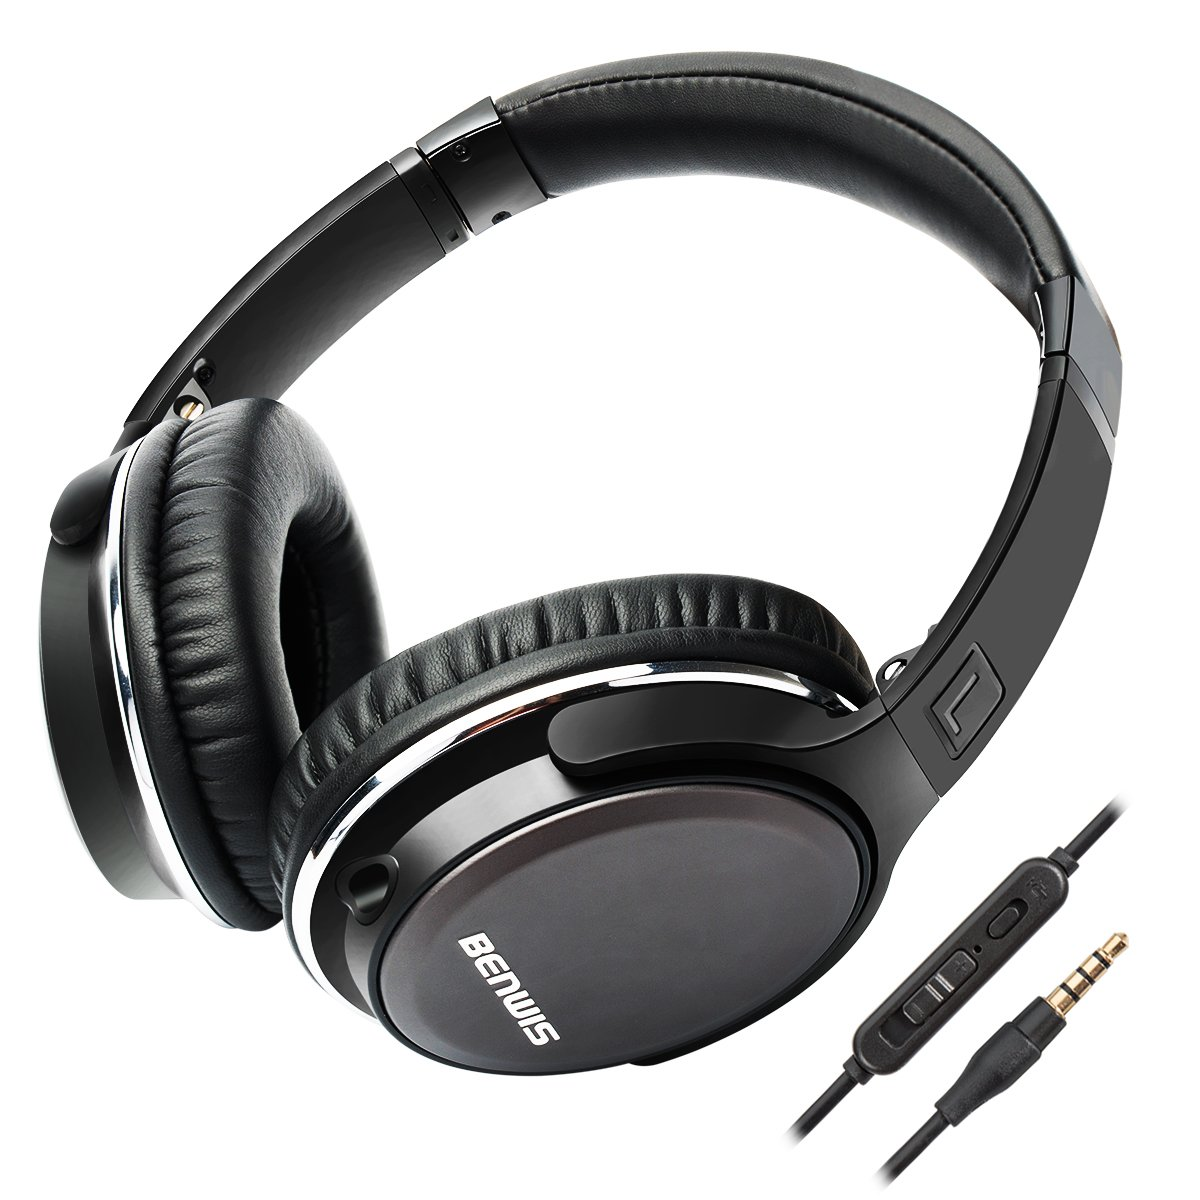 BENWIS Over Ear Headphones with Microphones Lightweight Foldable Hi-Fi Stereo and Noise Cancelling Wired Headsets for Computer Cell Phones MP3, Black